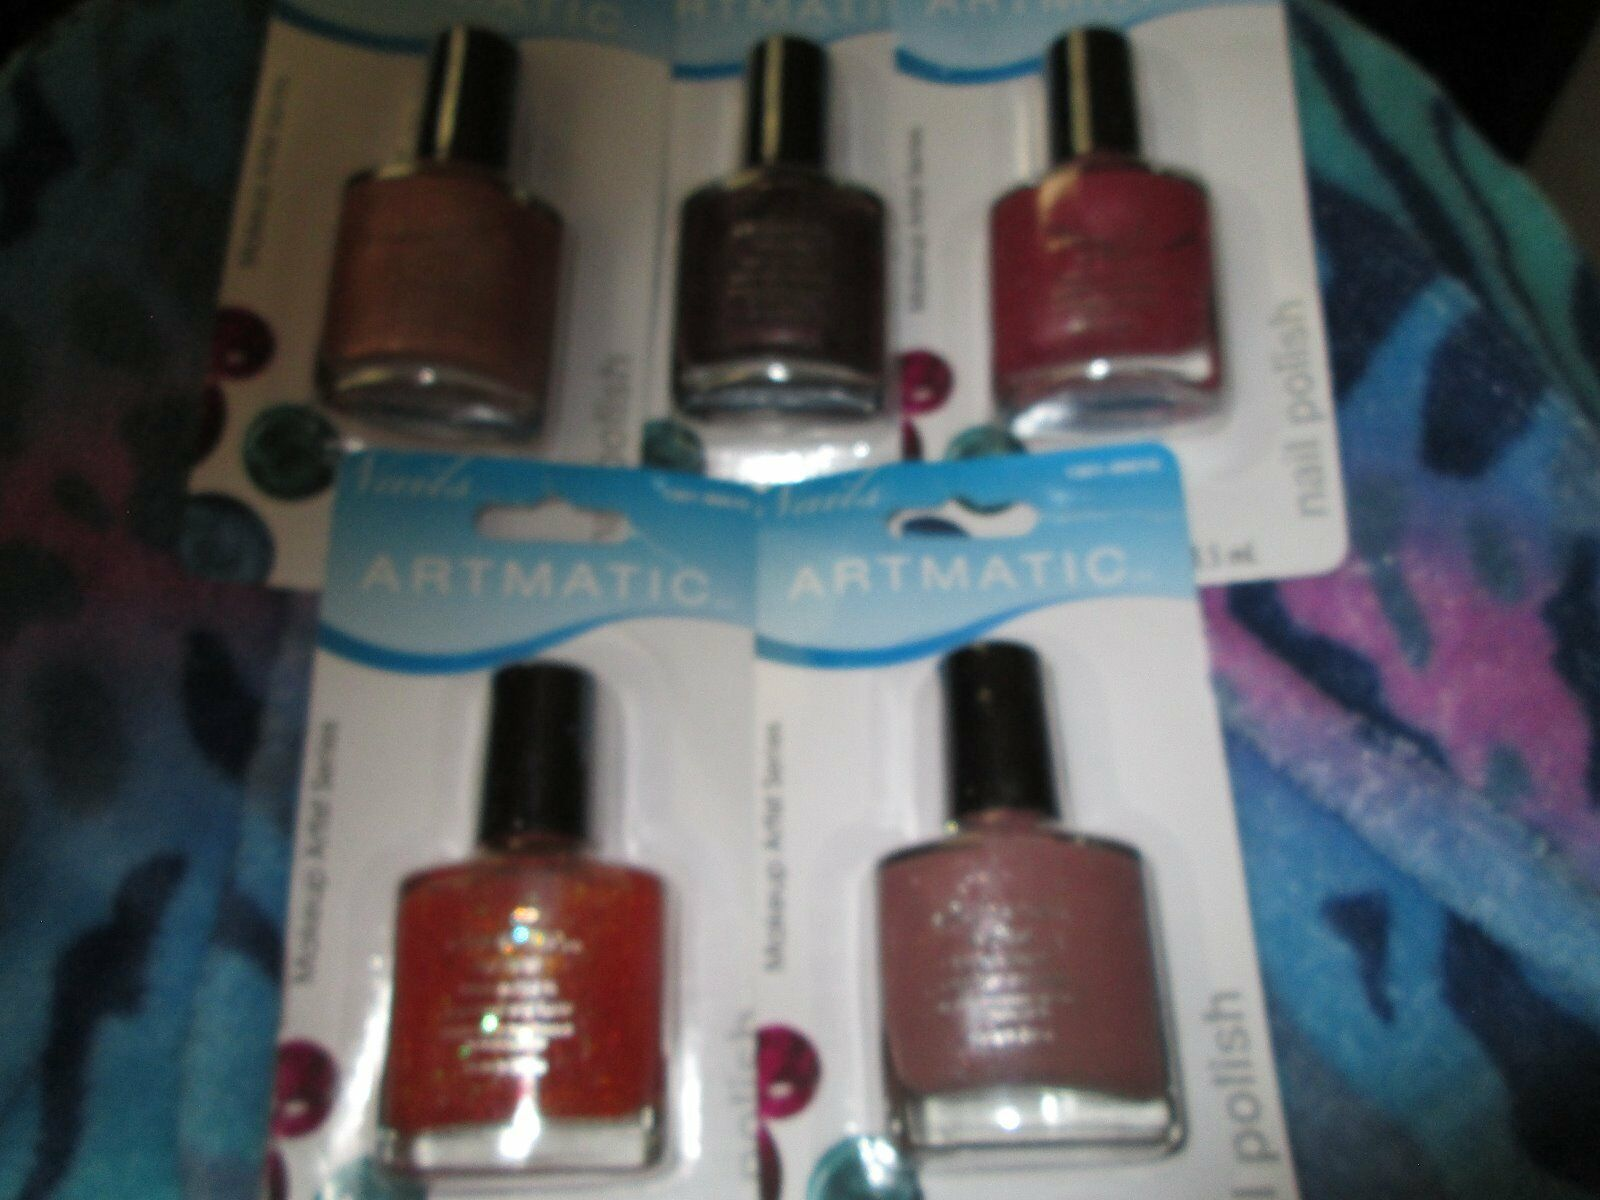 Lots of 5 Artmatic Nail Polish Different color Brand New • $4.99 ...